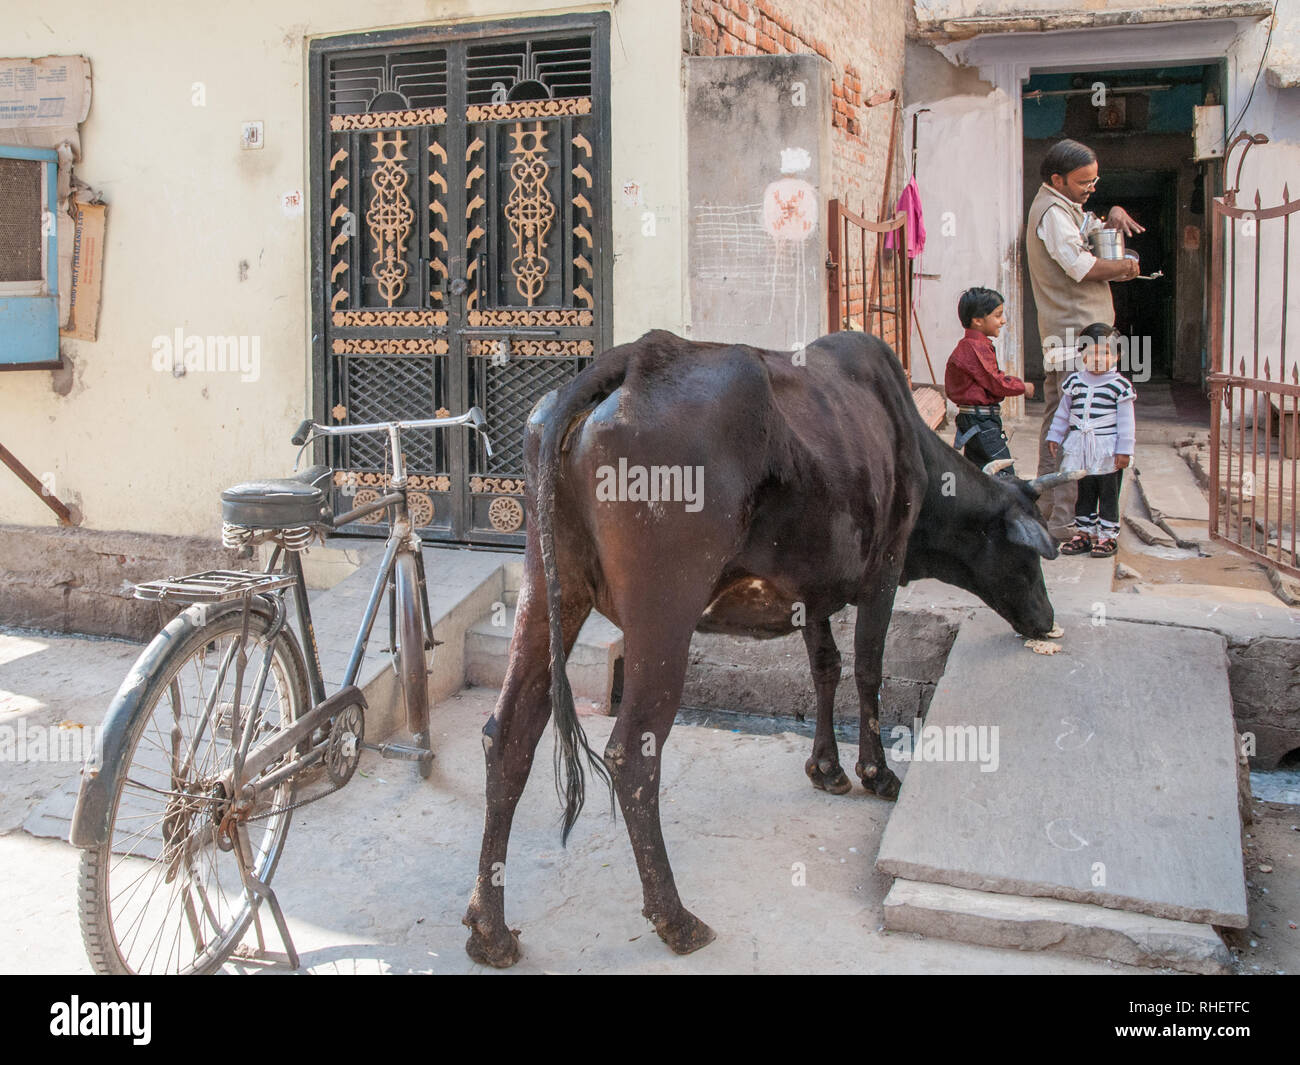 Strolling cow is fed with naan bread on a morning by a family in Jaipur. In Hiduism cows are sacred and respected animals. Stock Photo